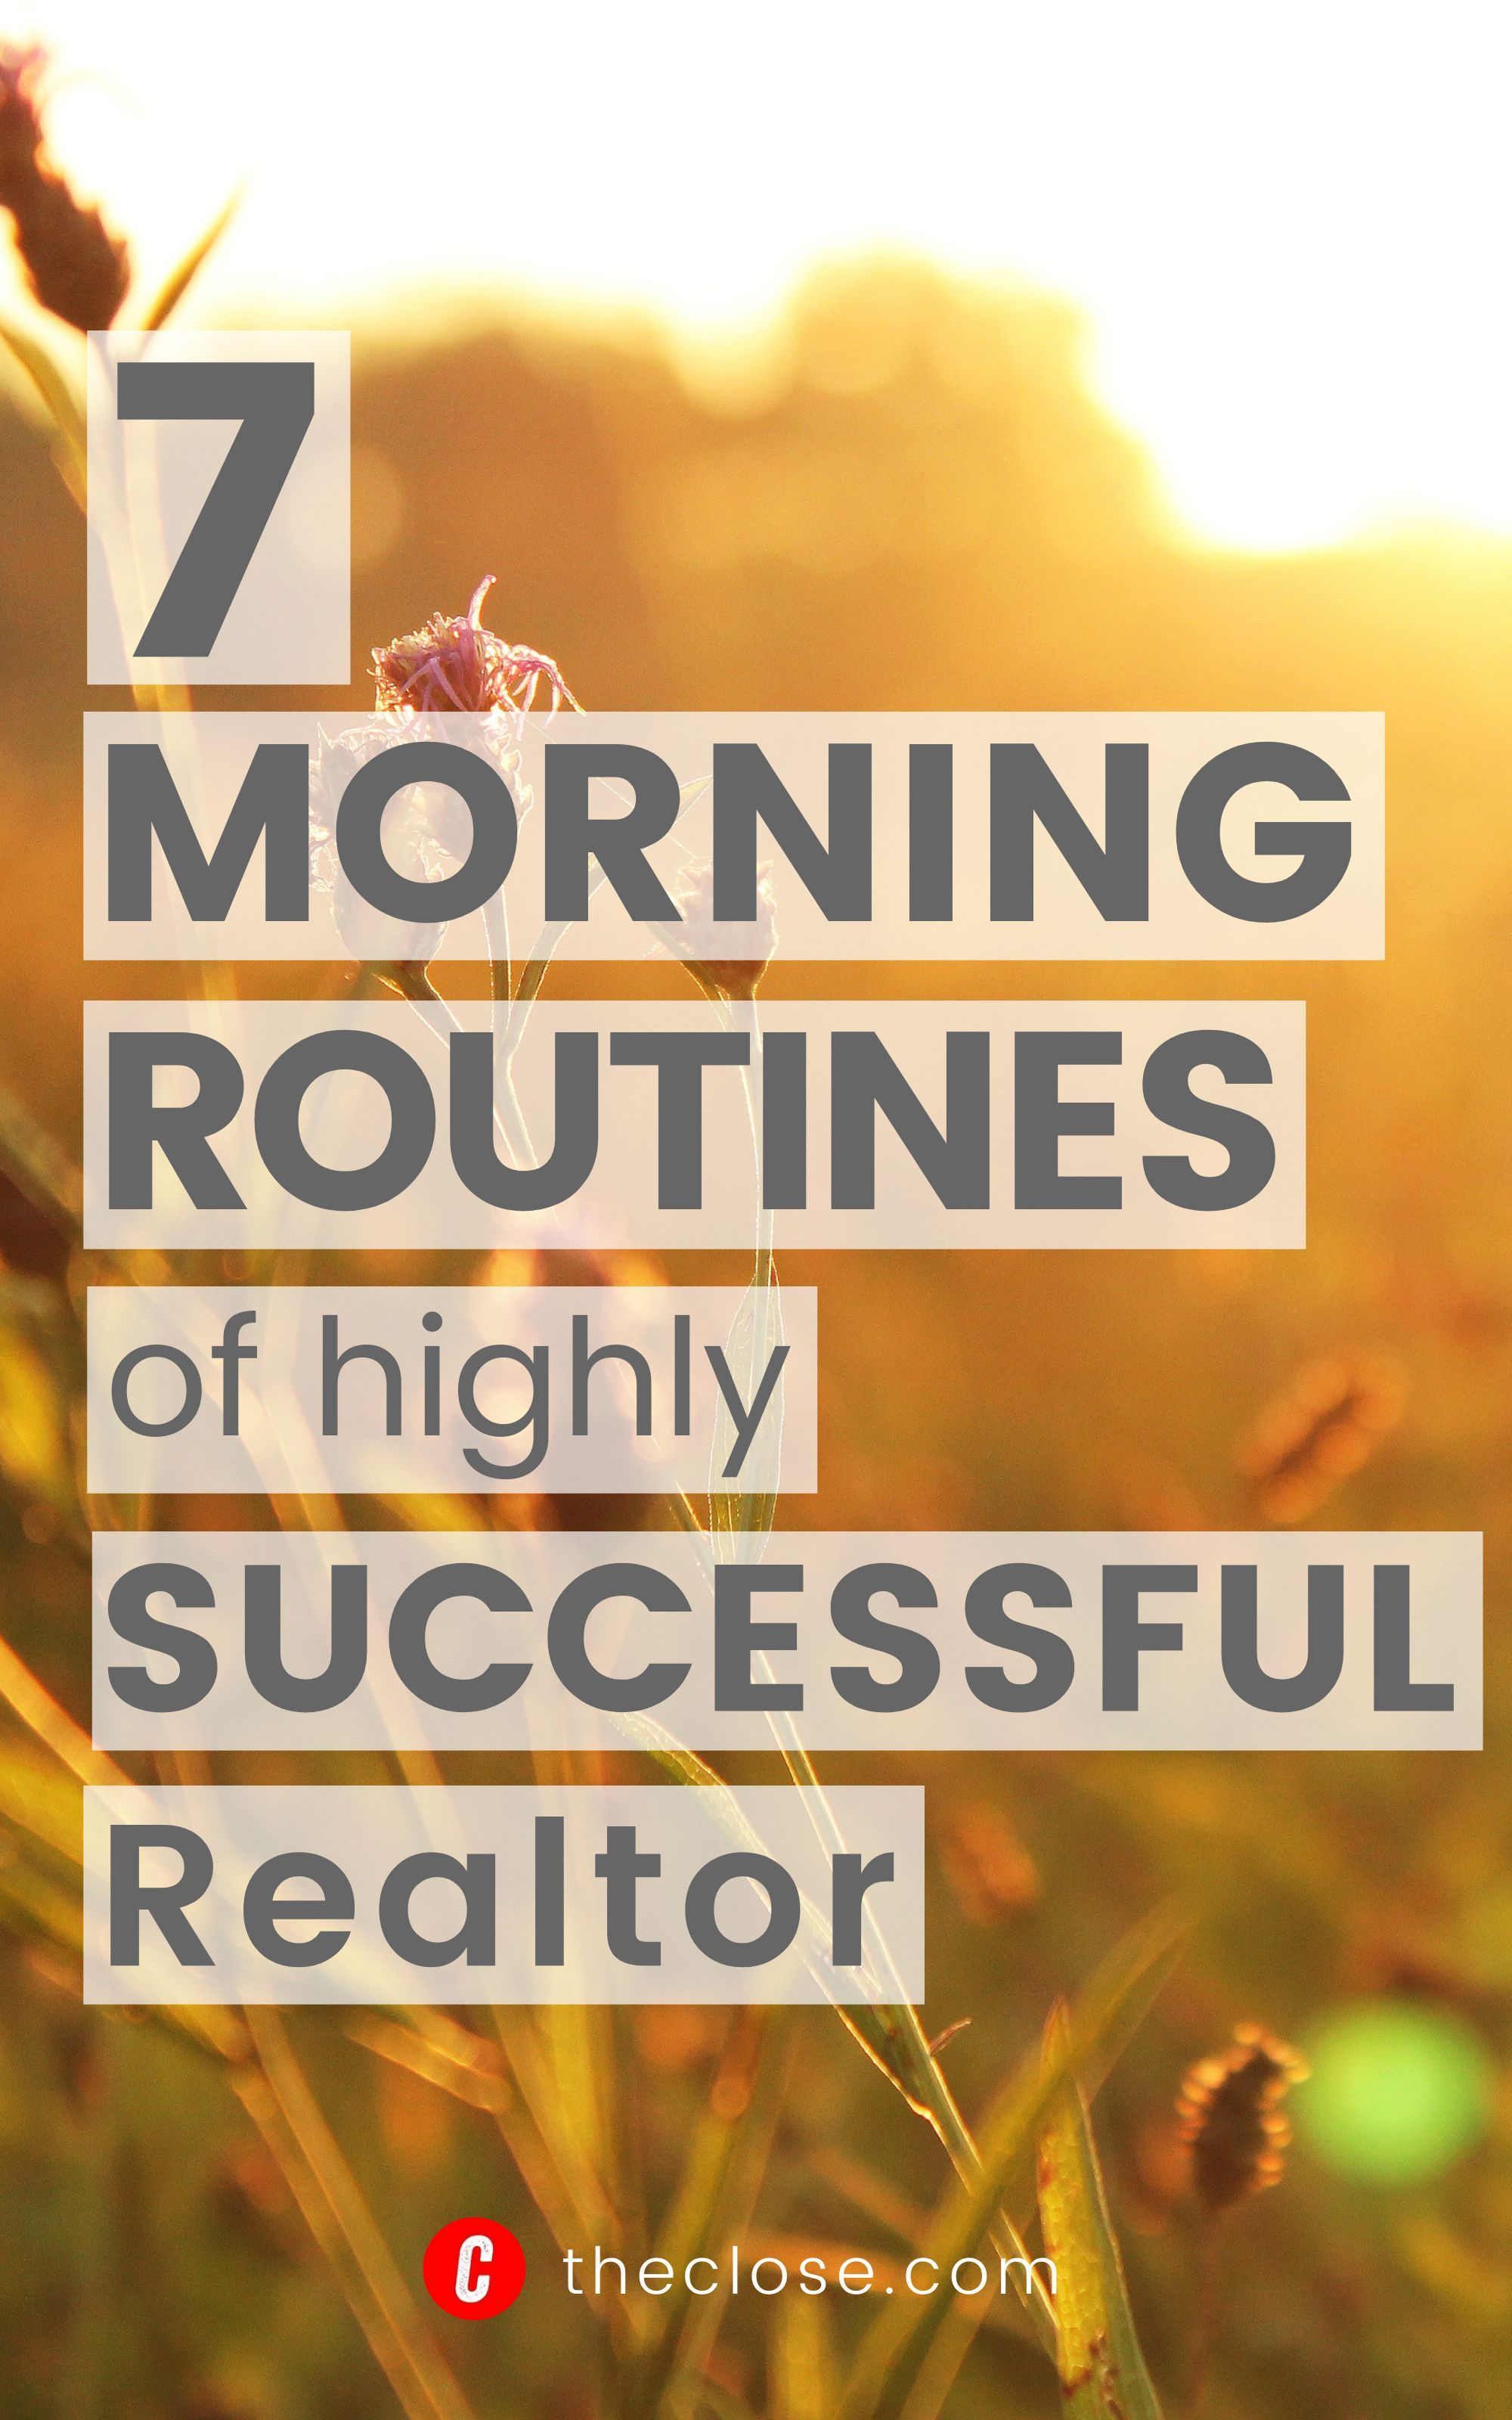 7 Morning Routines of Highly Successful Realtors